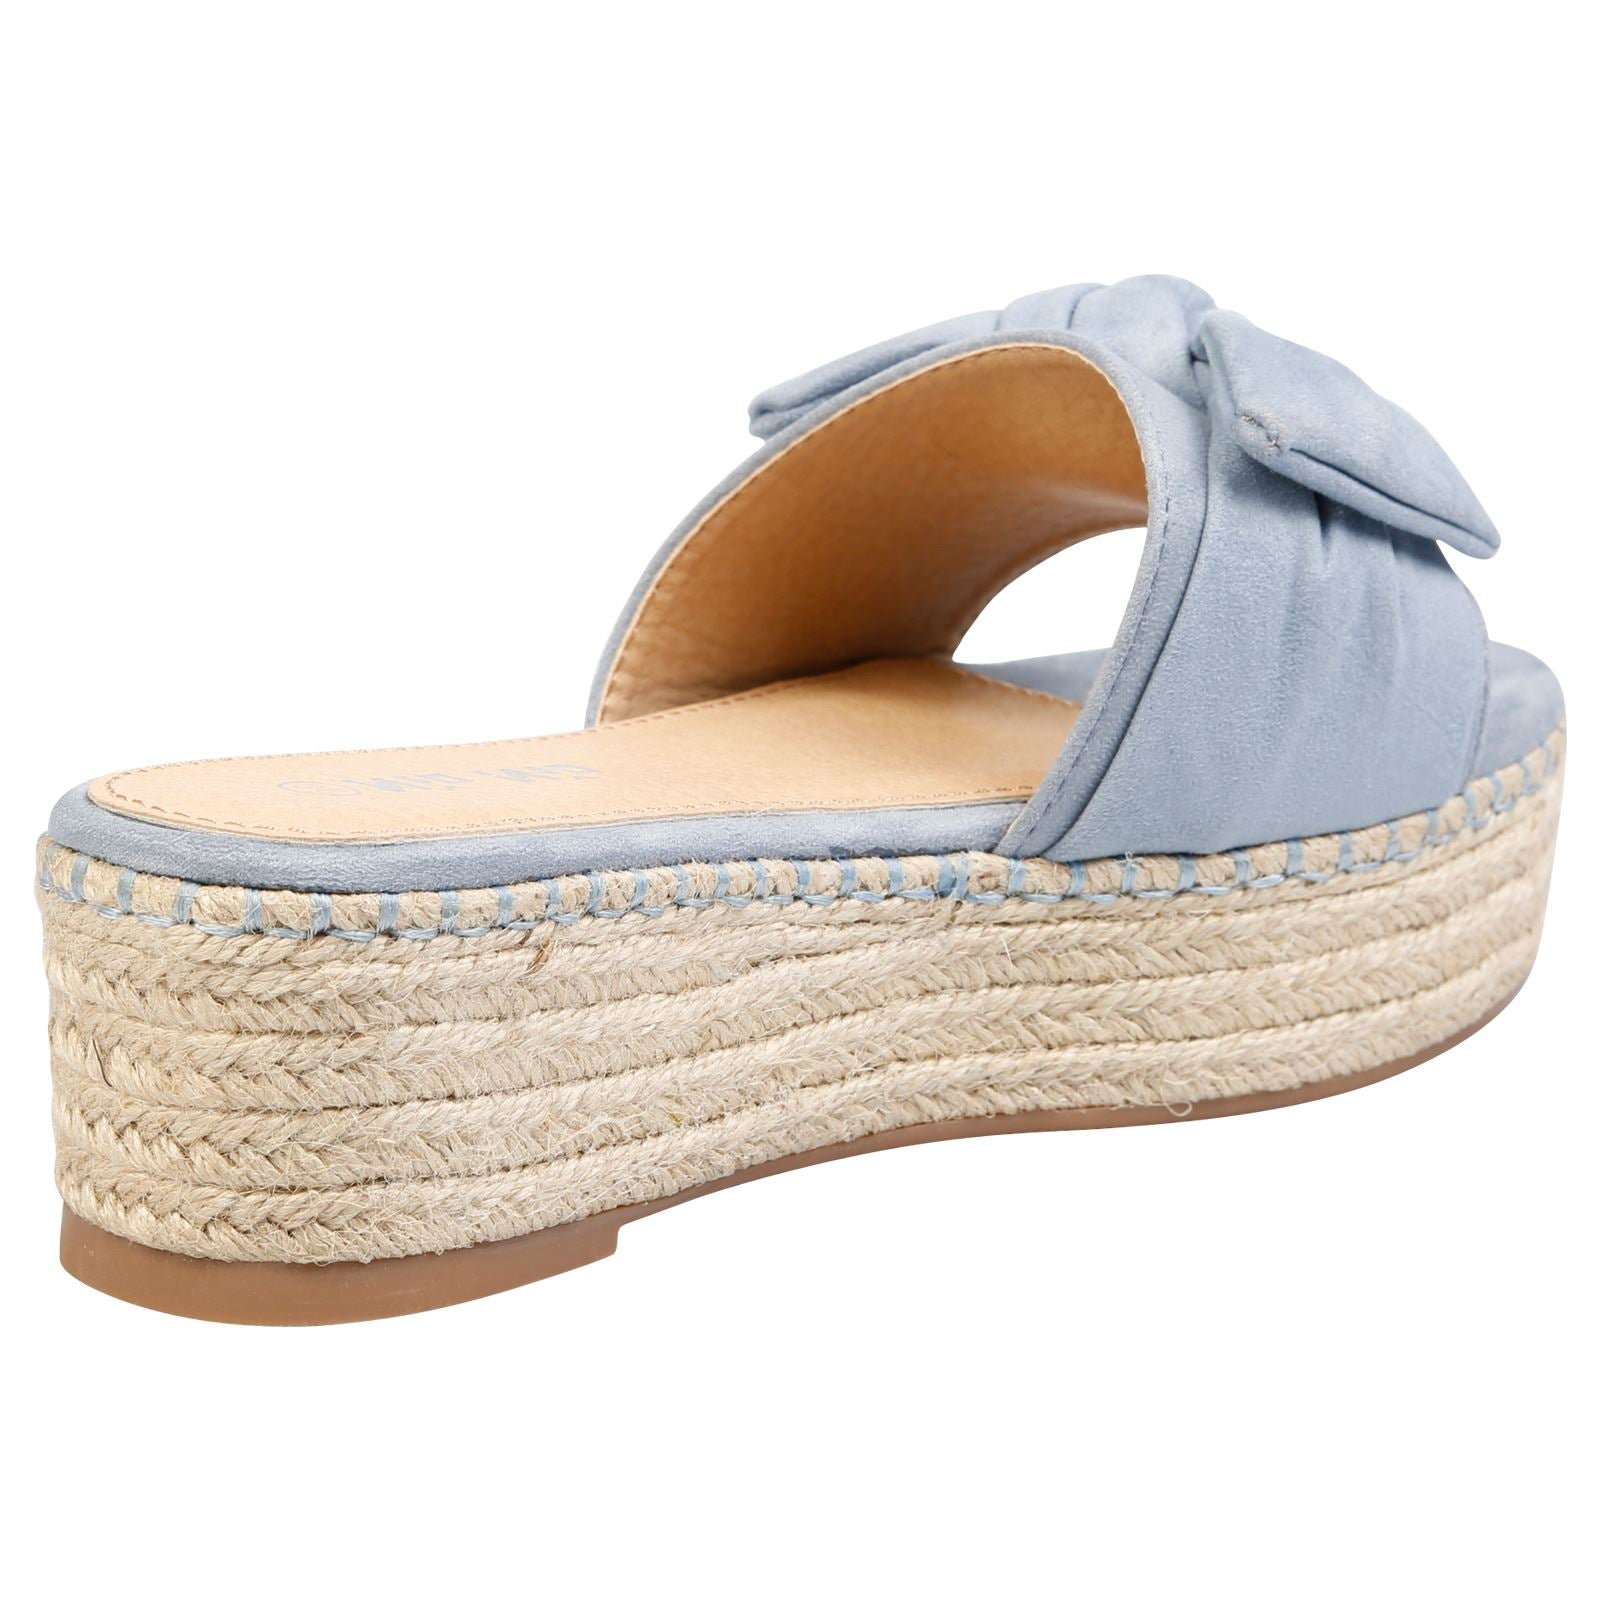 Felicity Bow Detail Espadrille Sliders in Blue Faux Suede